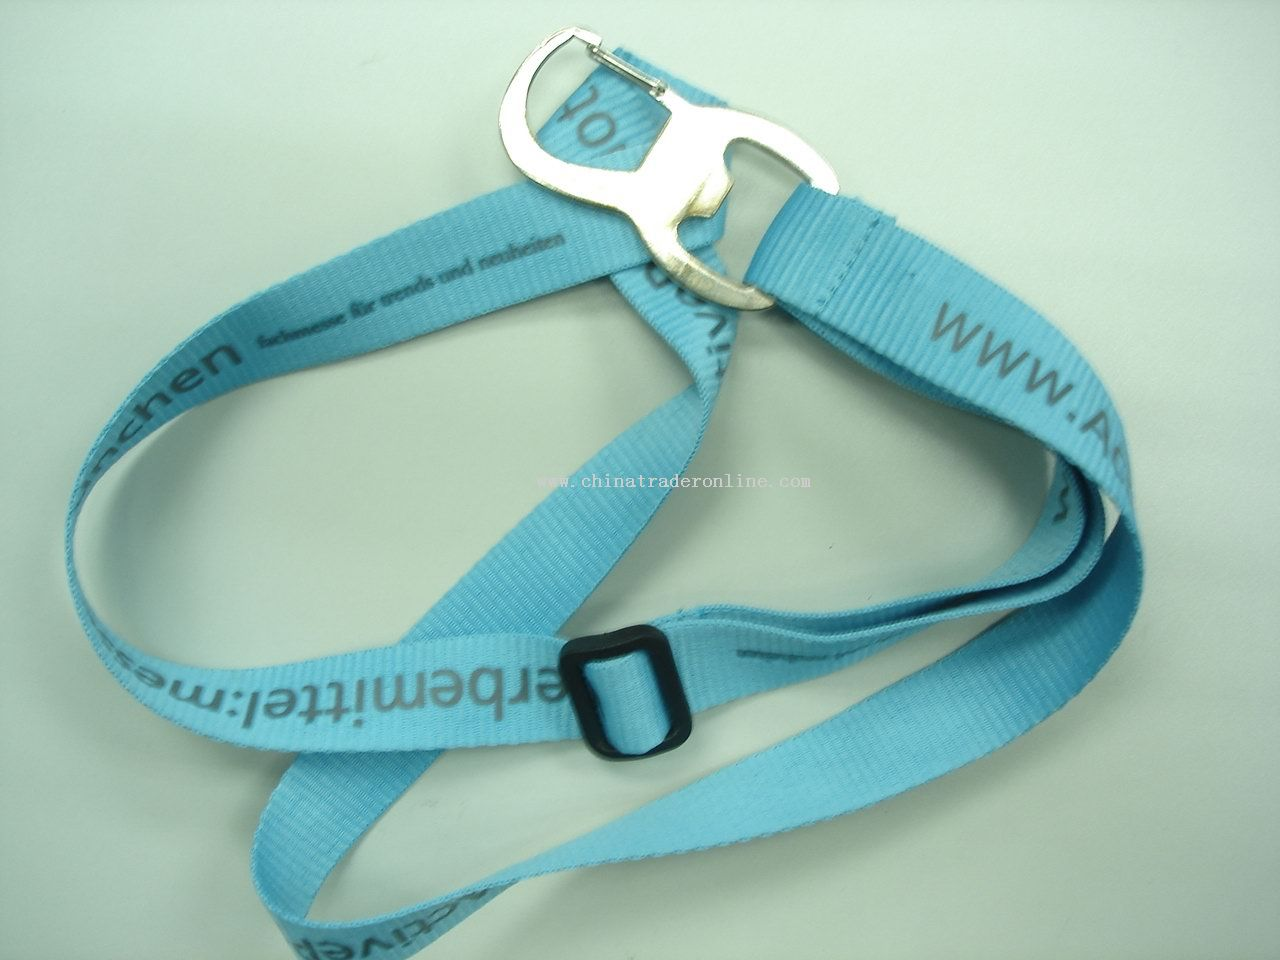 Bottle opener lanyards